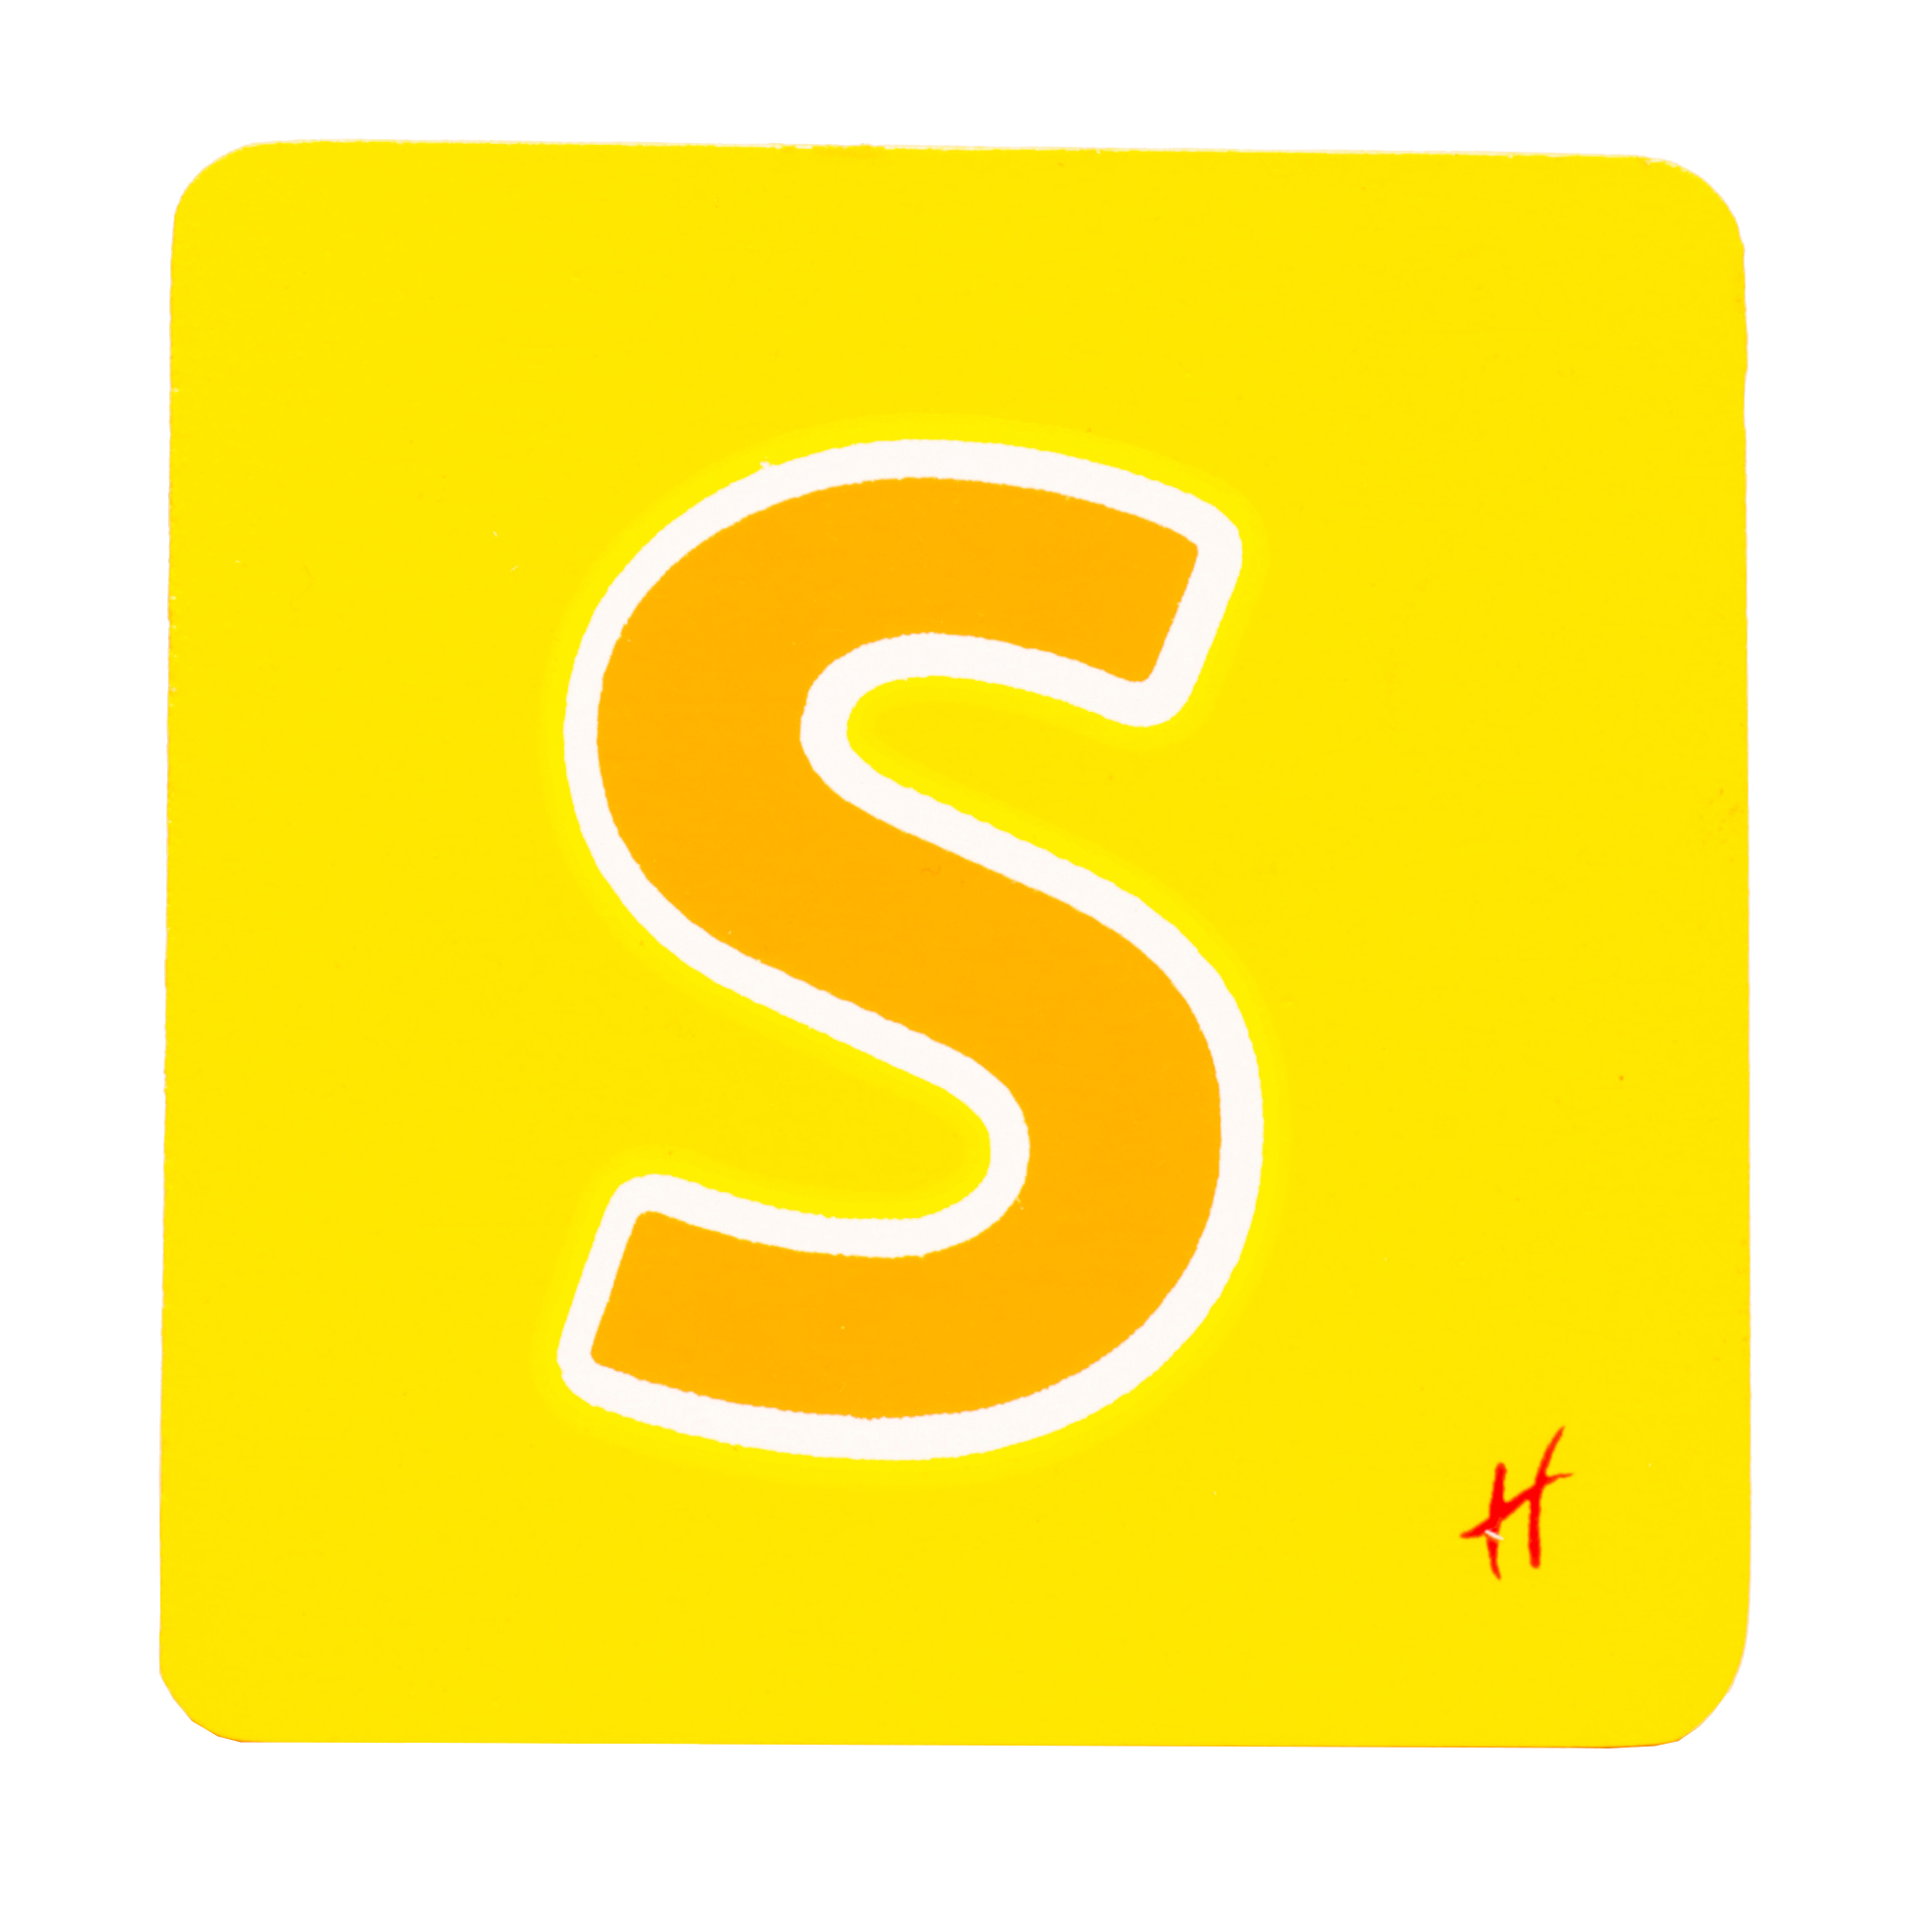 Hamleys Wooden Letter S